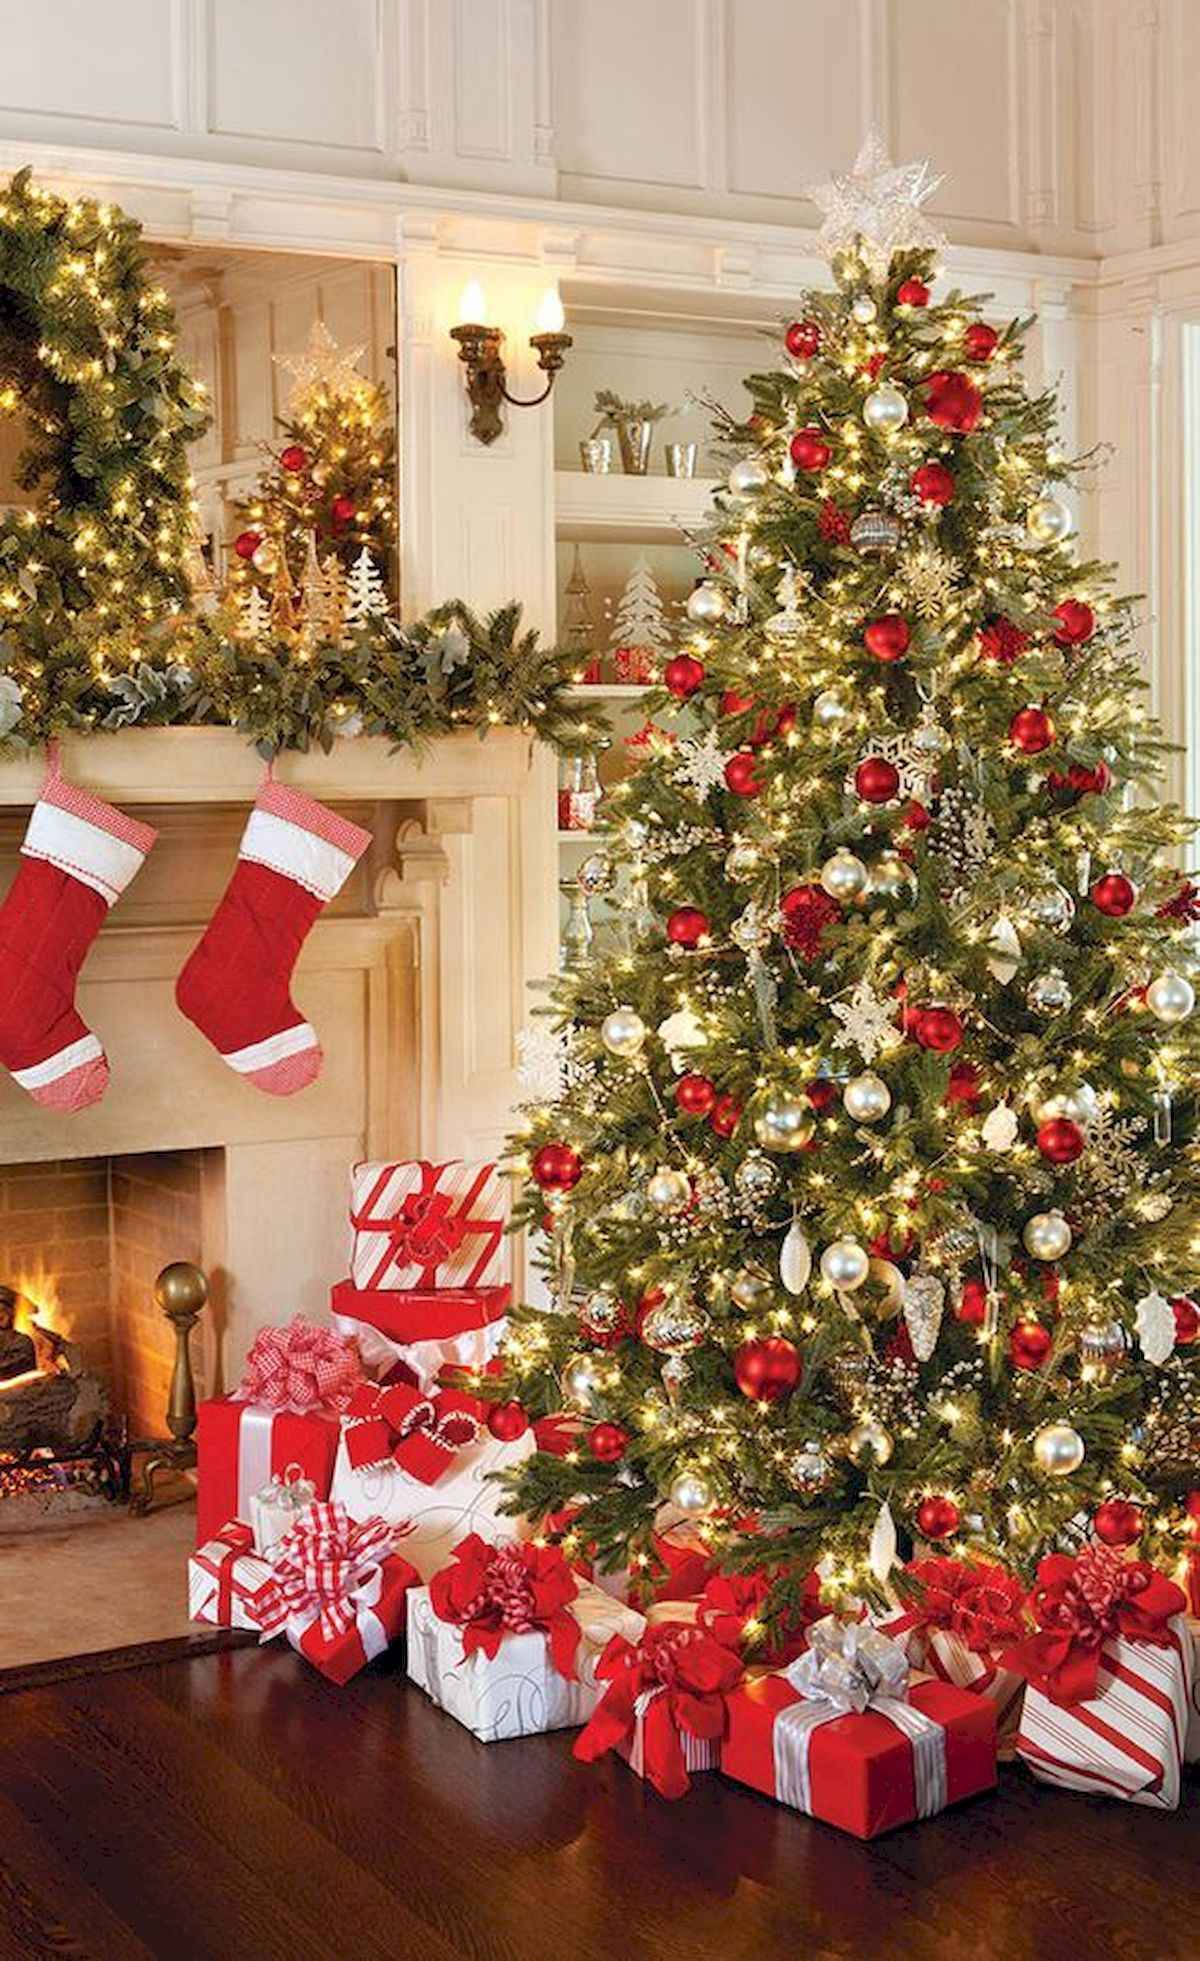 60 awesome christmas tree decorations ideas (14)